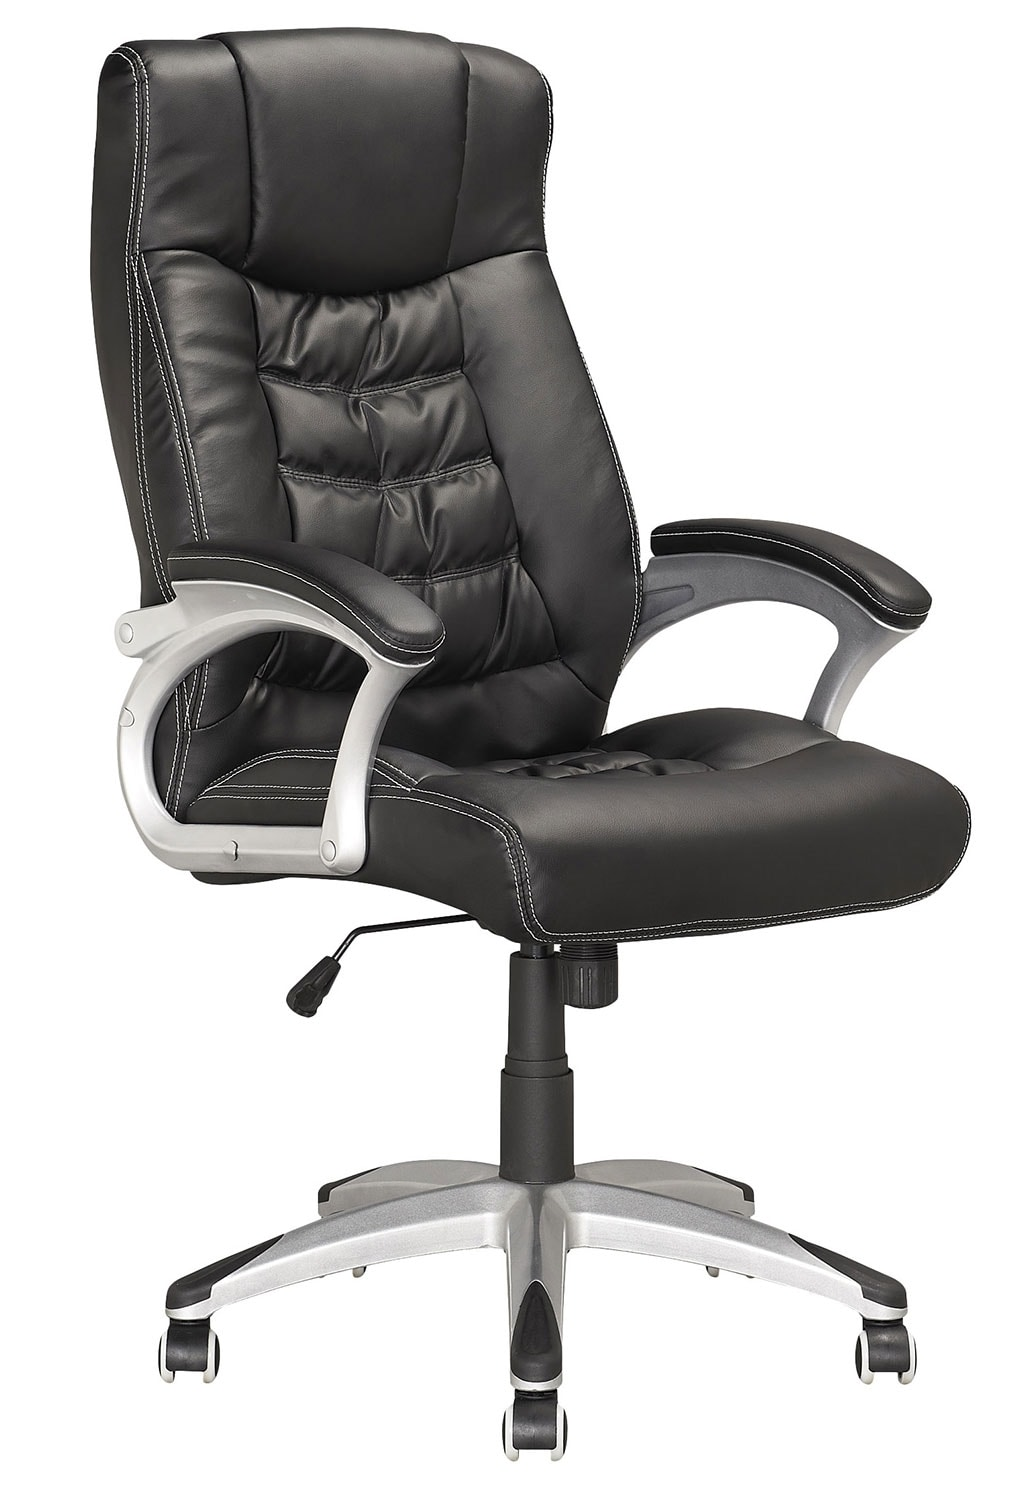 Home Office Furniture - Tampa Foam-Padded Leatherette Executive Office Chair